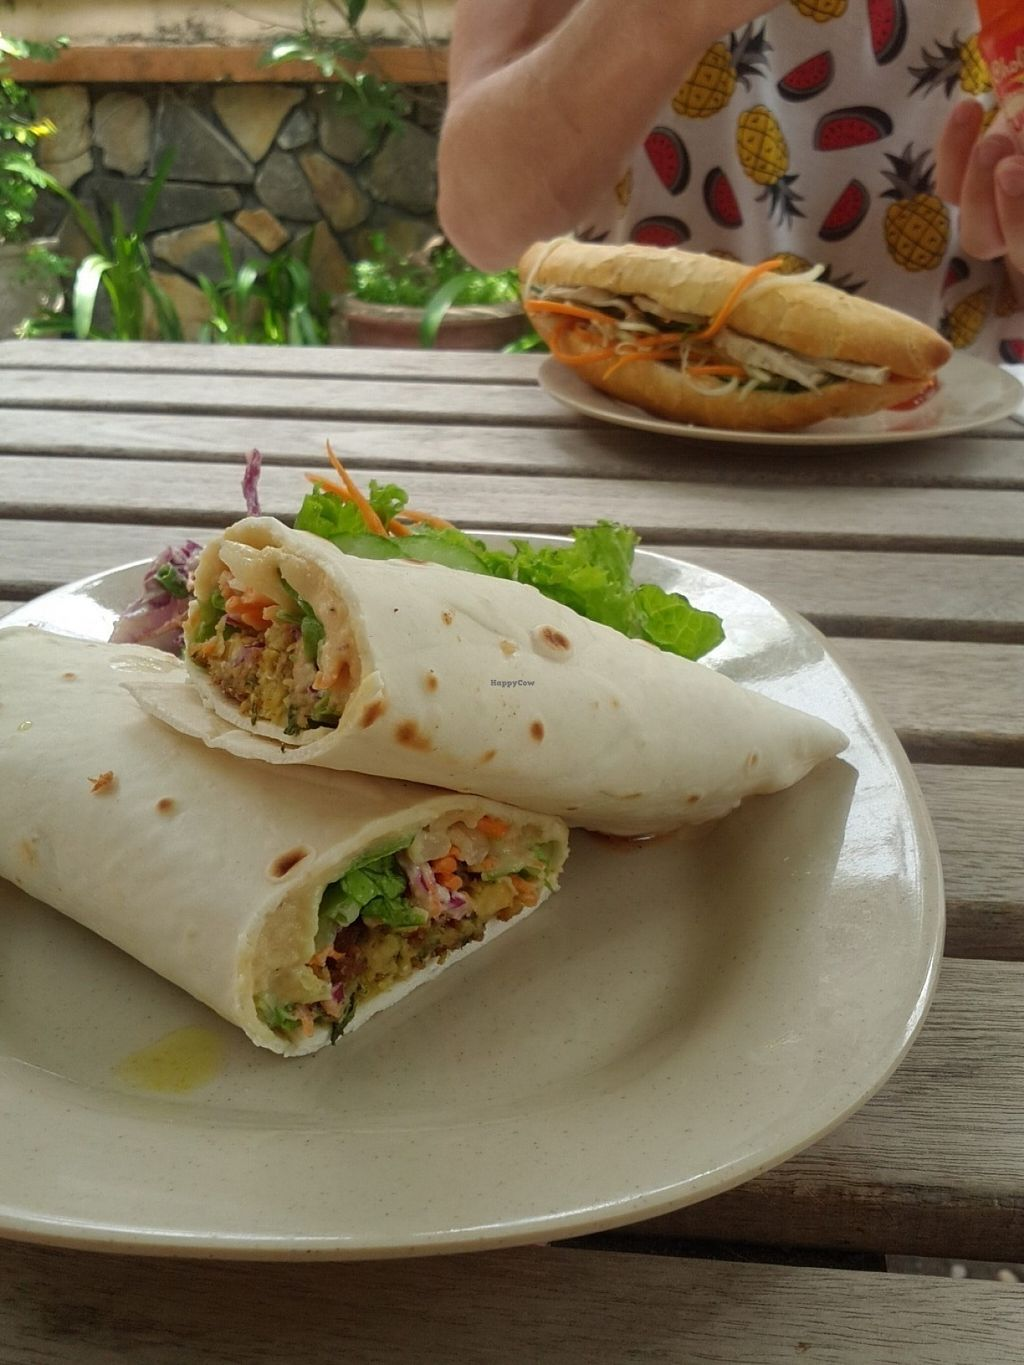 "Photo of Jack's Cat Cafe  by <a href=""/members/profile/Fairbridge"">Fairbridge</a> <br/>Falafel wrap -so good! <br/> July 16, 2016  - <a href='/contact/abuse/image/72185/160230'>Report</a>"